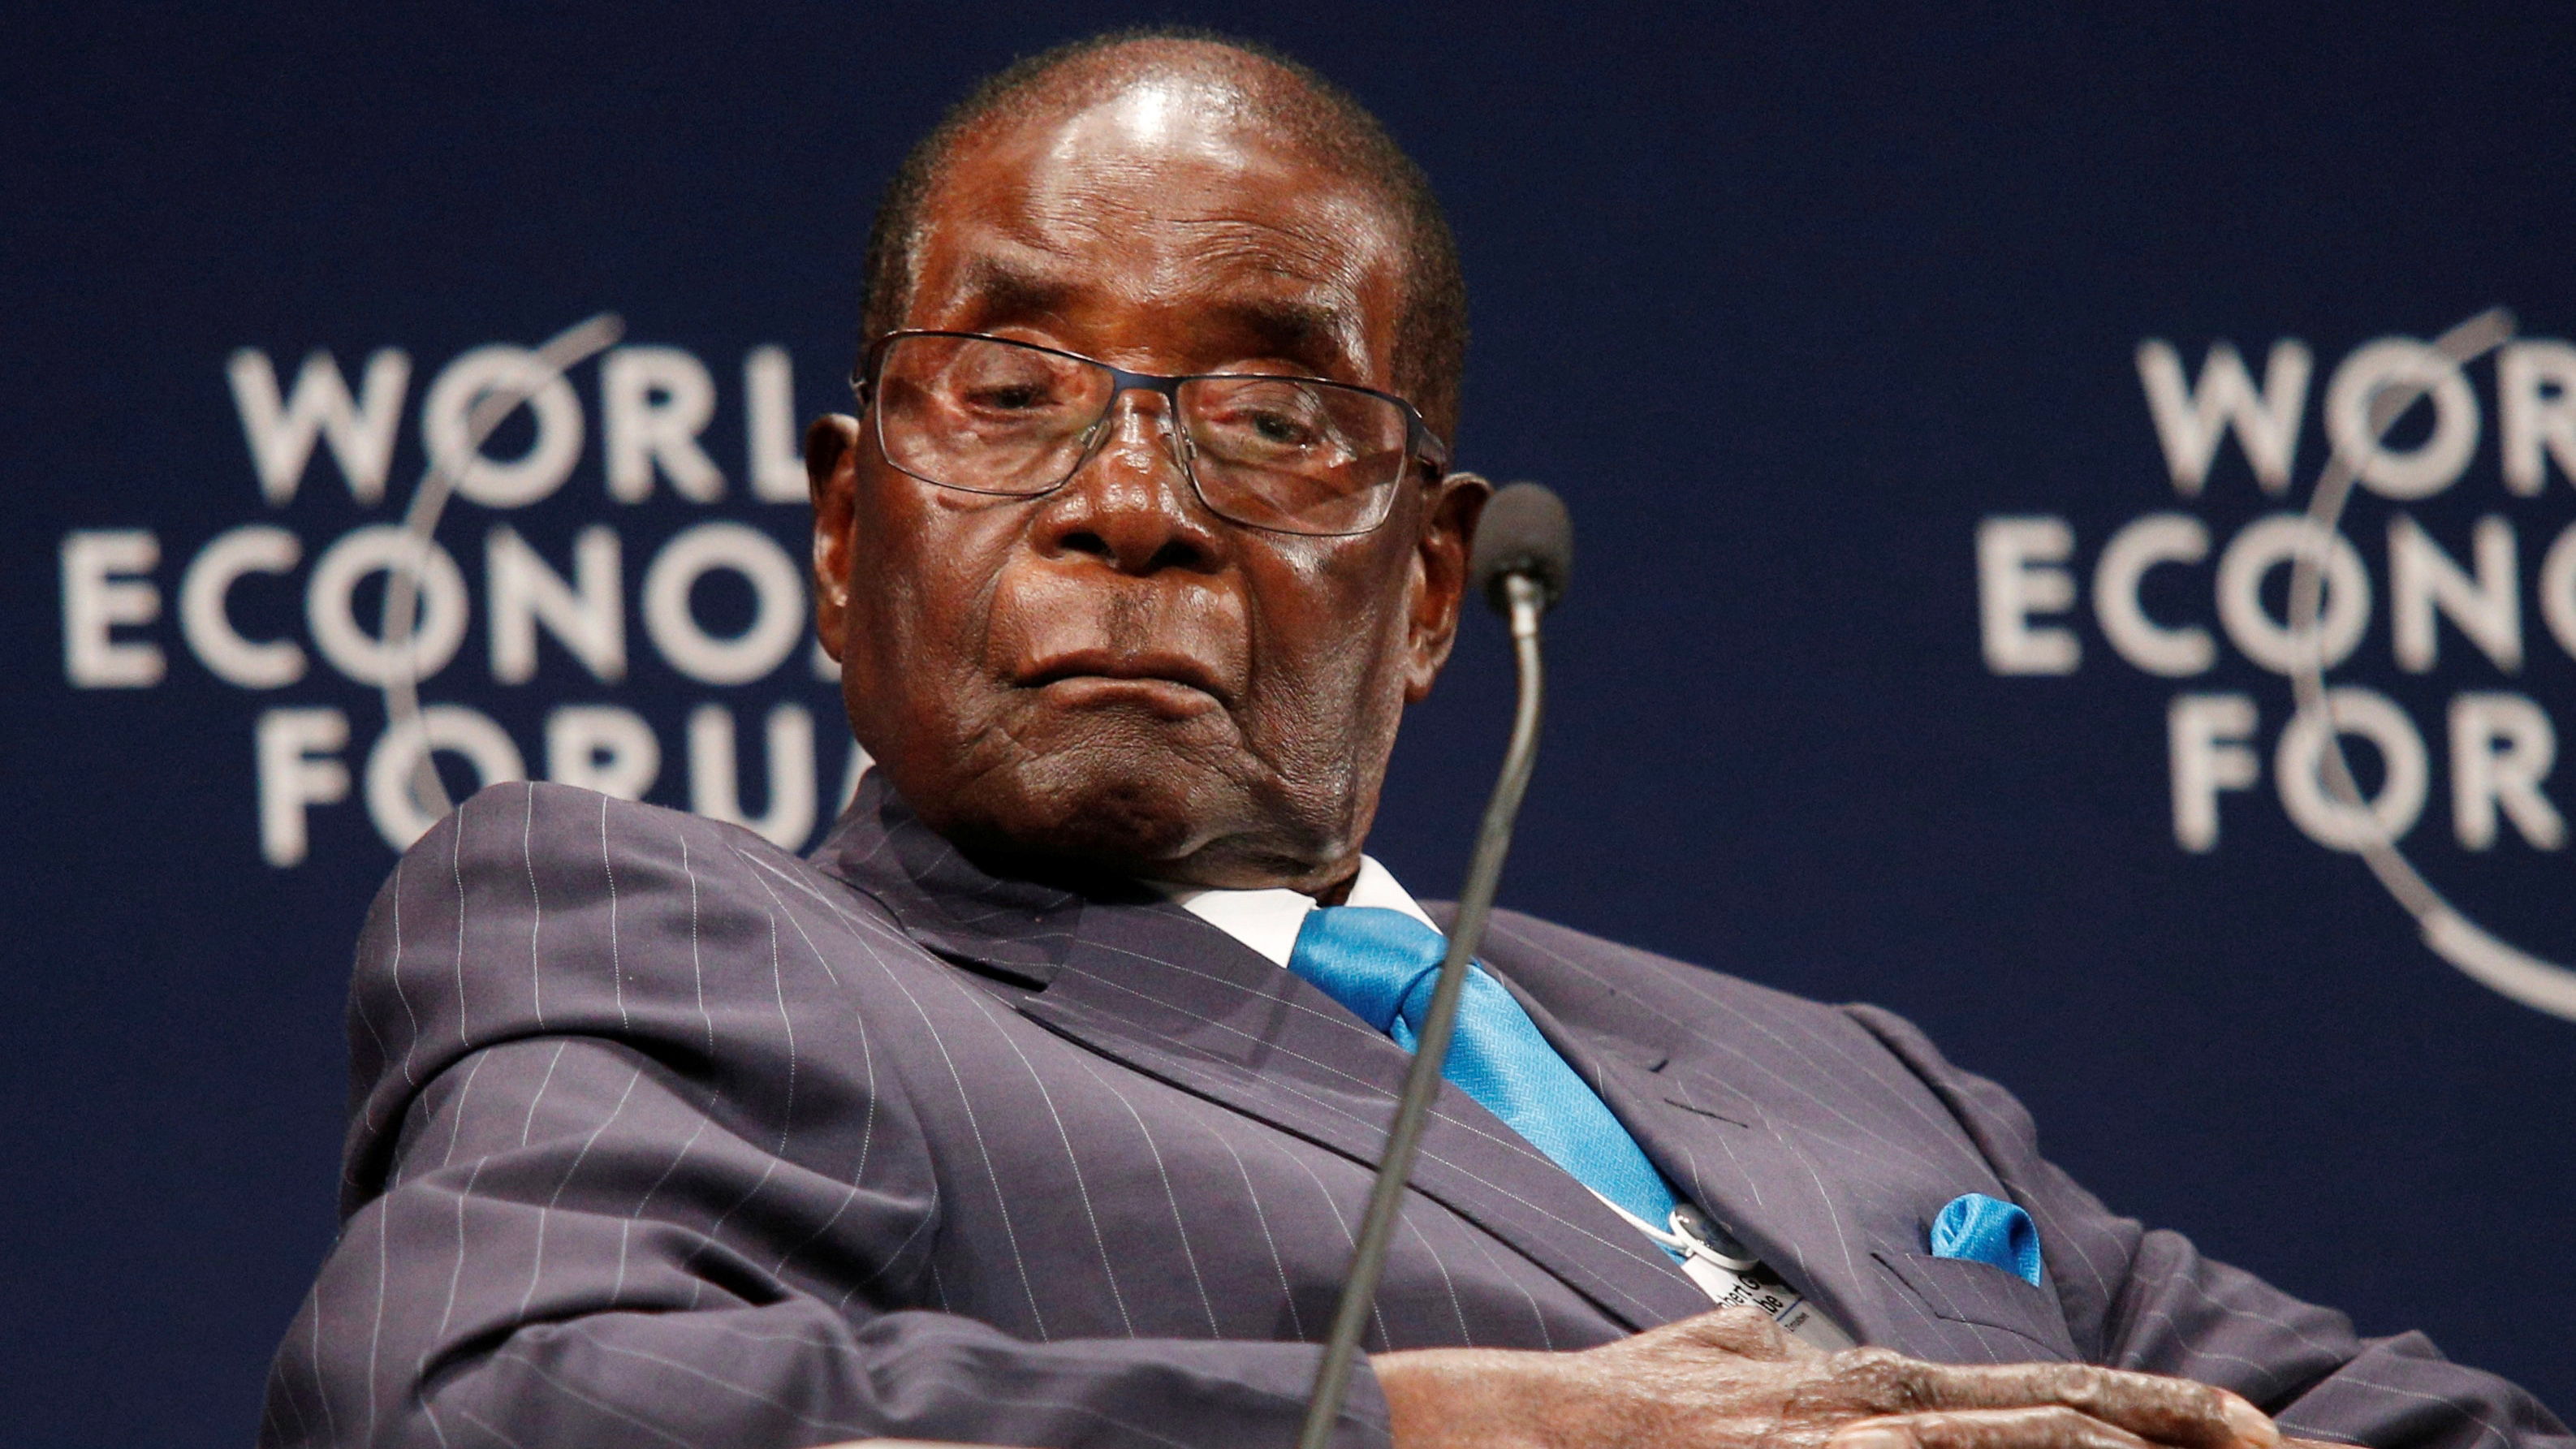 Zimbabwean President Robert Mugabe participates in a discussion at the World Economic Forum on Africa 2017 meeting in Durban, South Africa May 4, 2017. REUTERS/Rogan Ward     TPX IMAGES OF THE DAY - RTS154DV